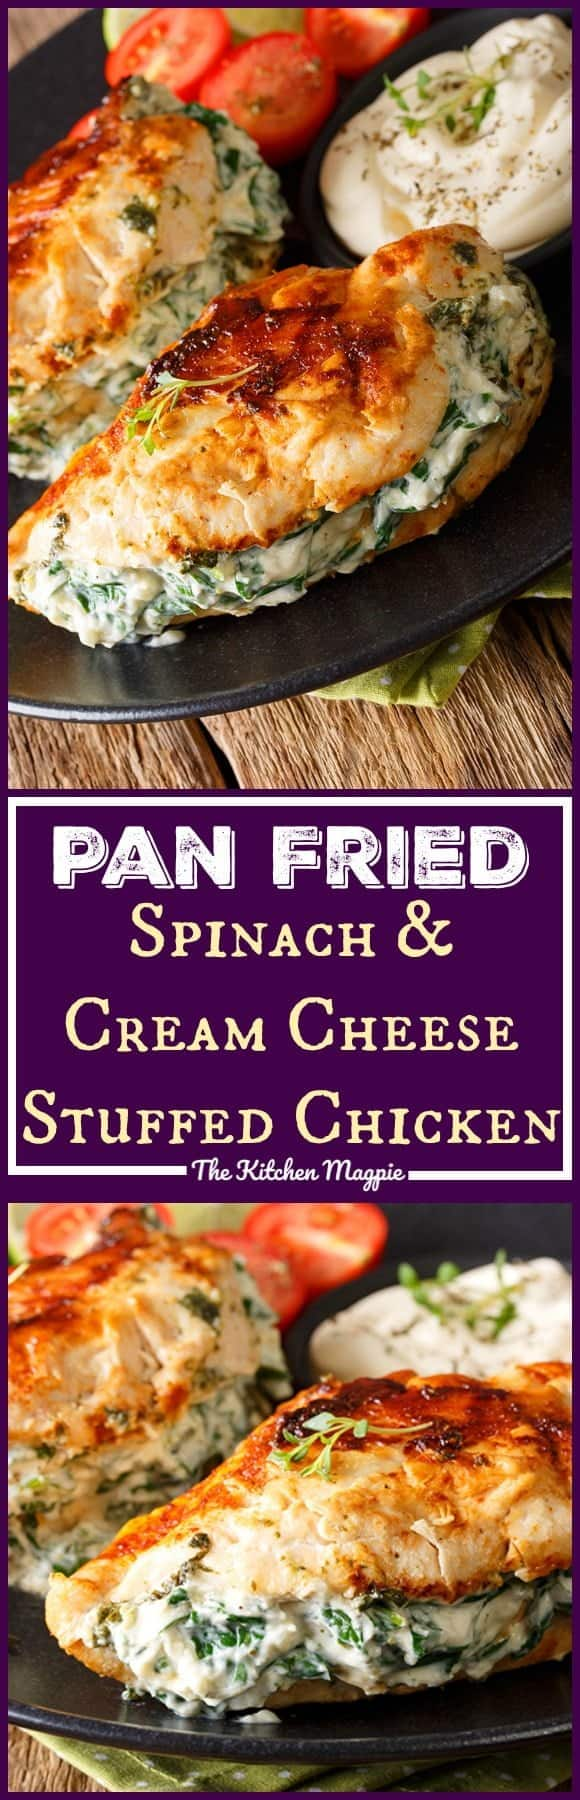 Pan Fried Spinach & Cream Cheese Stuffed Chicken . This healthy chicken dish is fast and simple to prepare! Use low-fat cream cheese and Parmesan and you have a healthy dinner full of protein and veggies! Recipe from @kitchenmagpie #recipe #chicken #creamcheese #dinner #supper